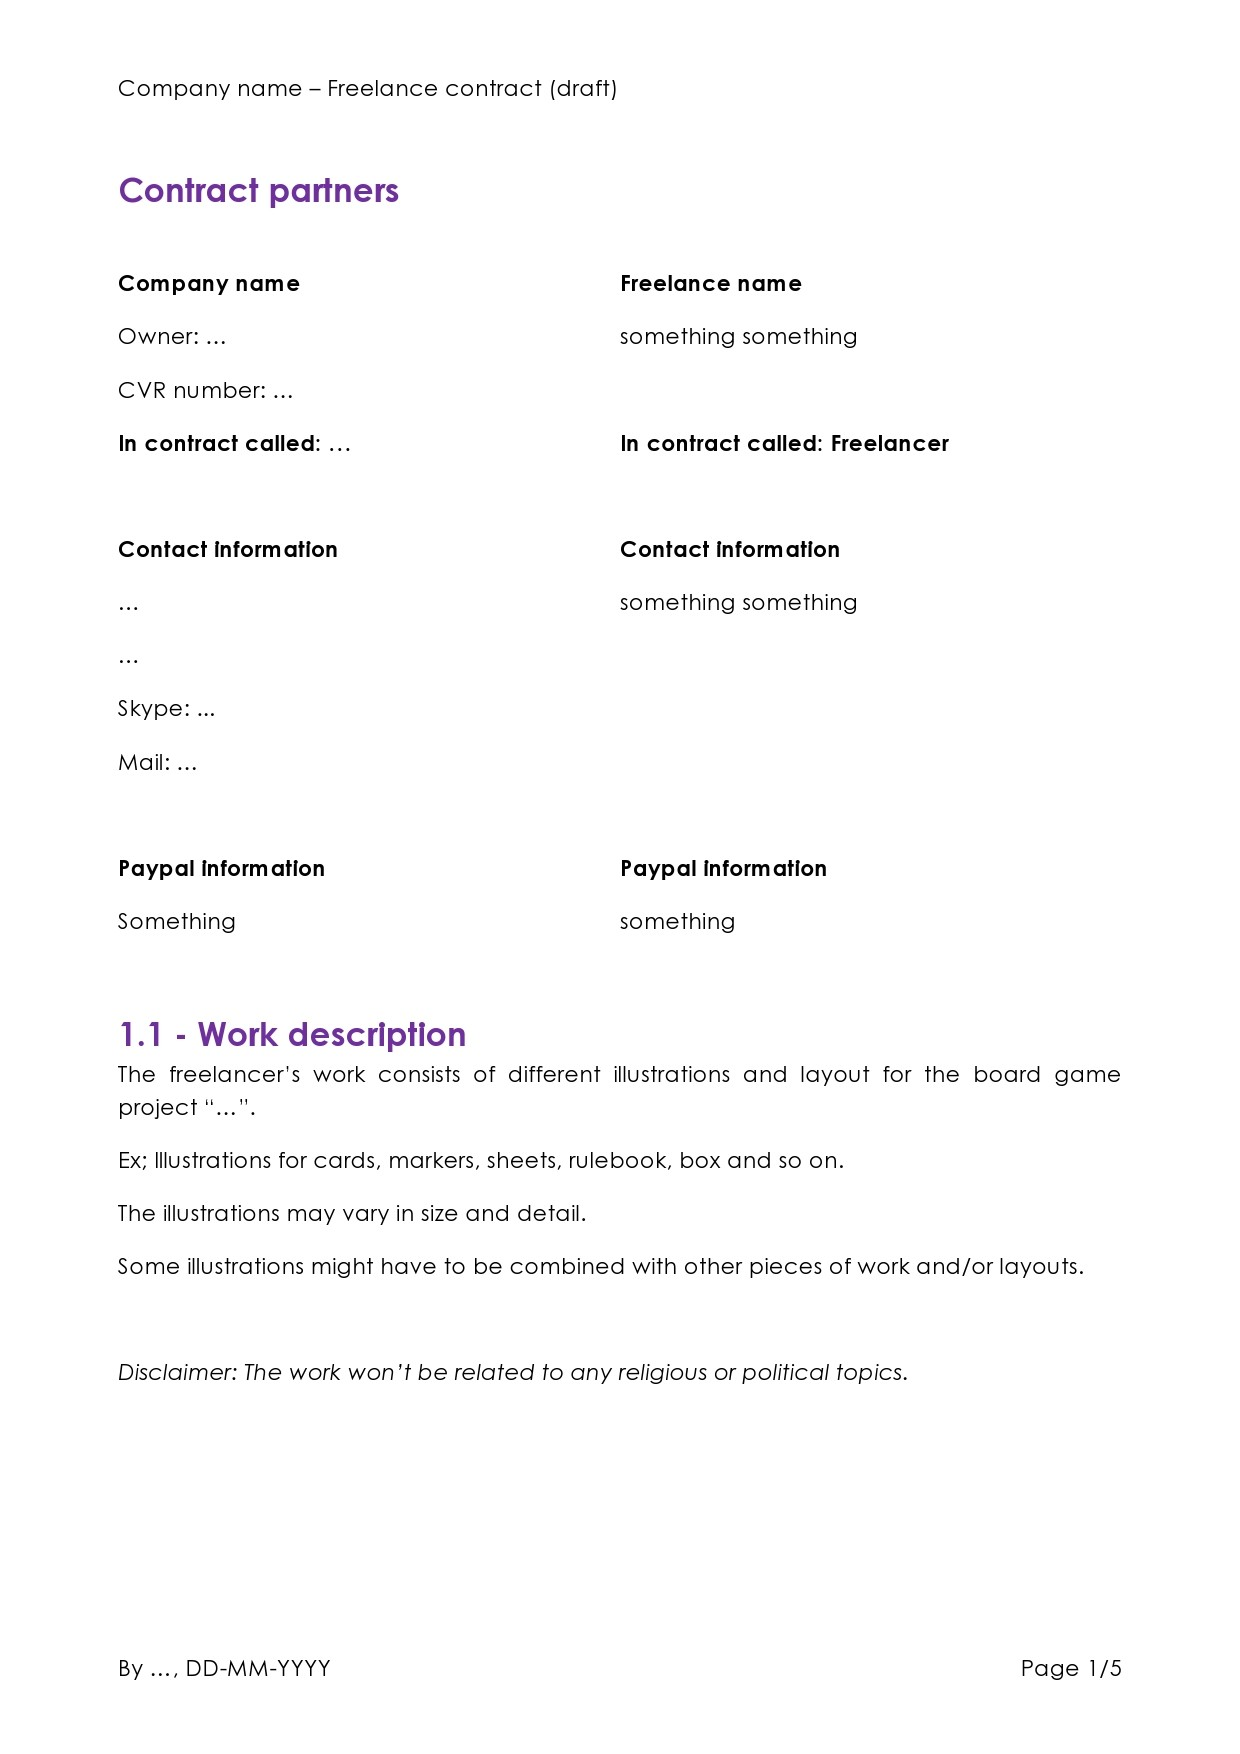 Free freelance contract template 05